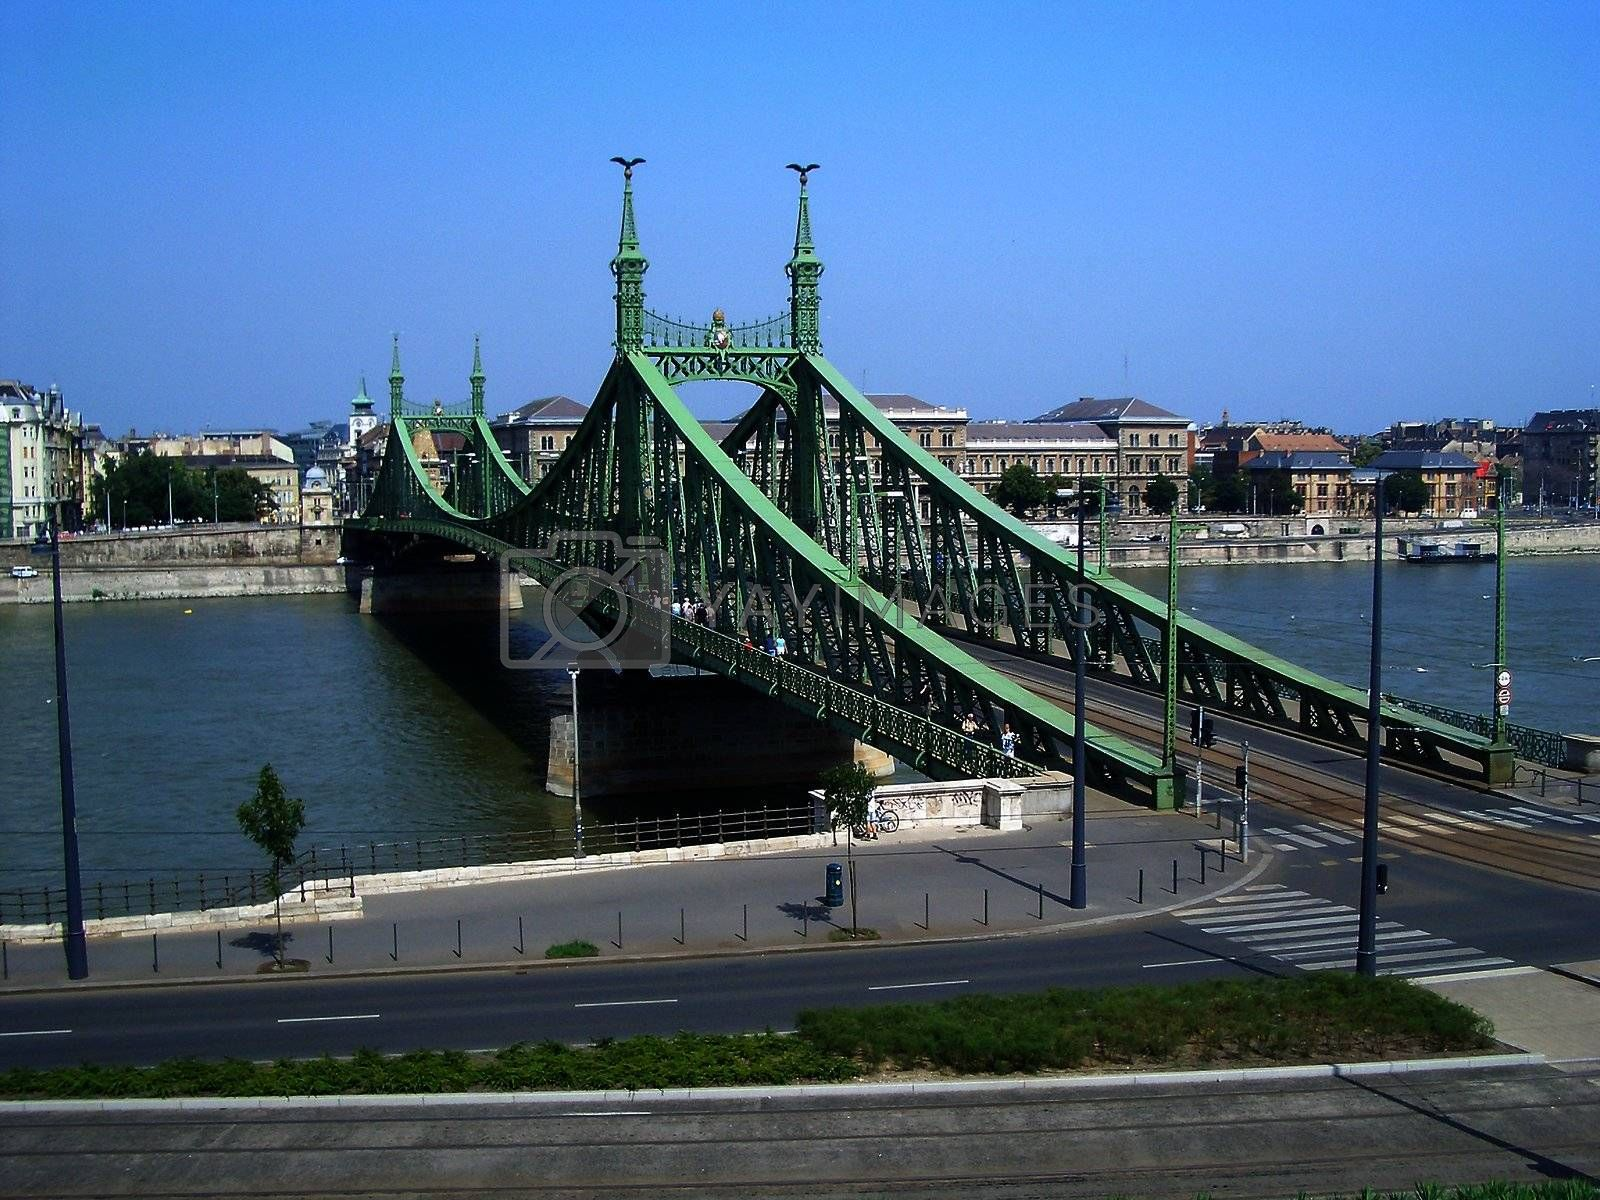 Indipendence Bridge over the Danube River, Budapest, Hungary by Marco Rubino